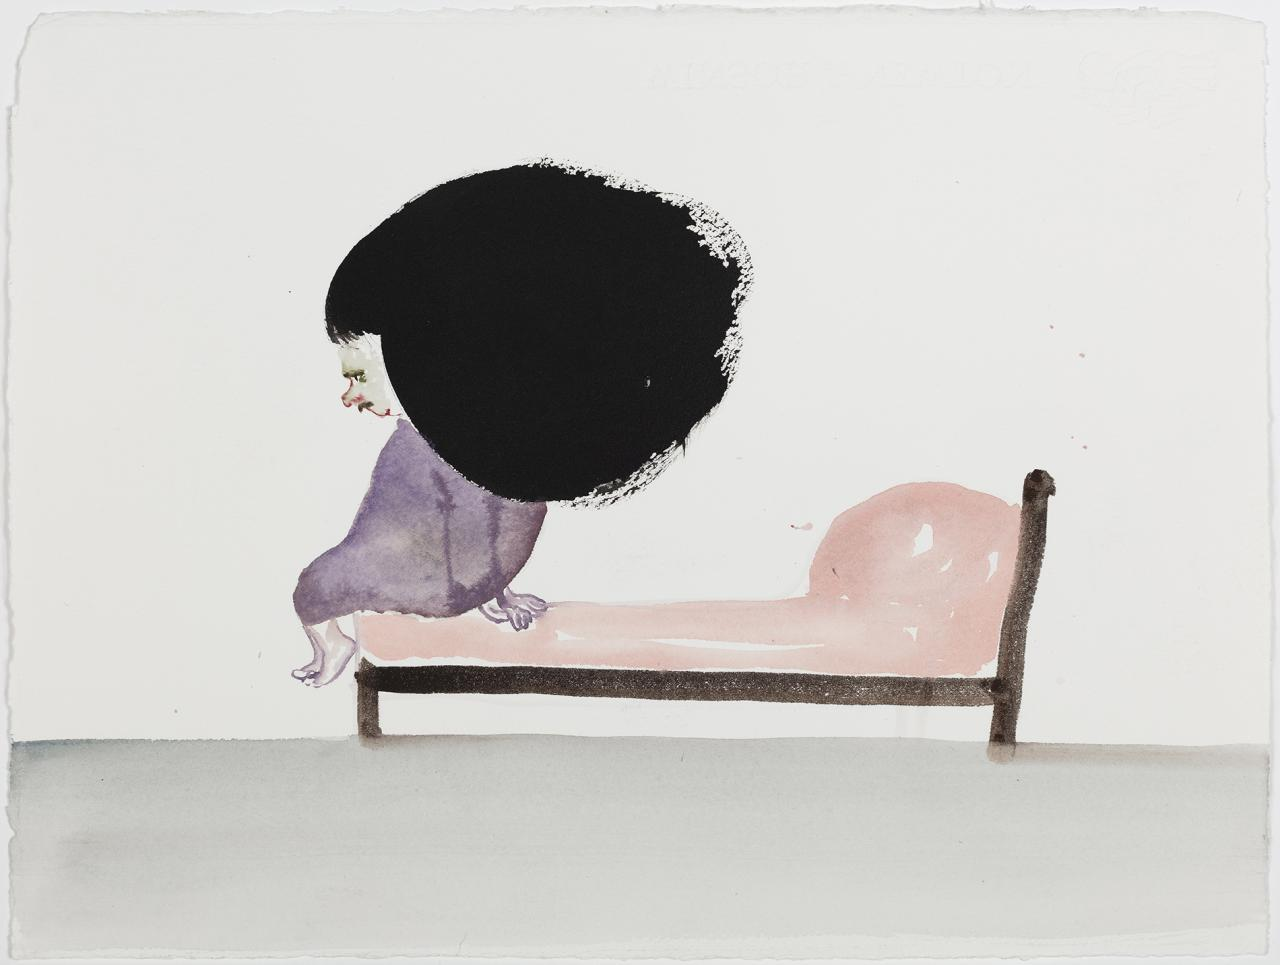 Sanya Kantarovsky, Dick Bed , 2020, Watercolor and ink on Arches paper, 28.6 x 37.5 cm